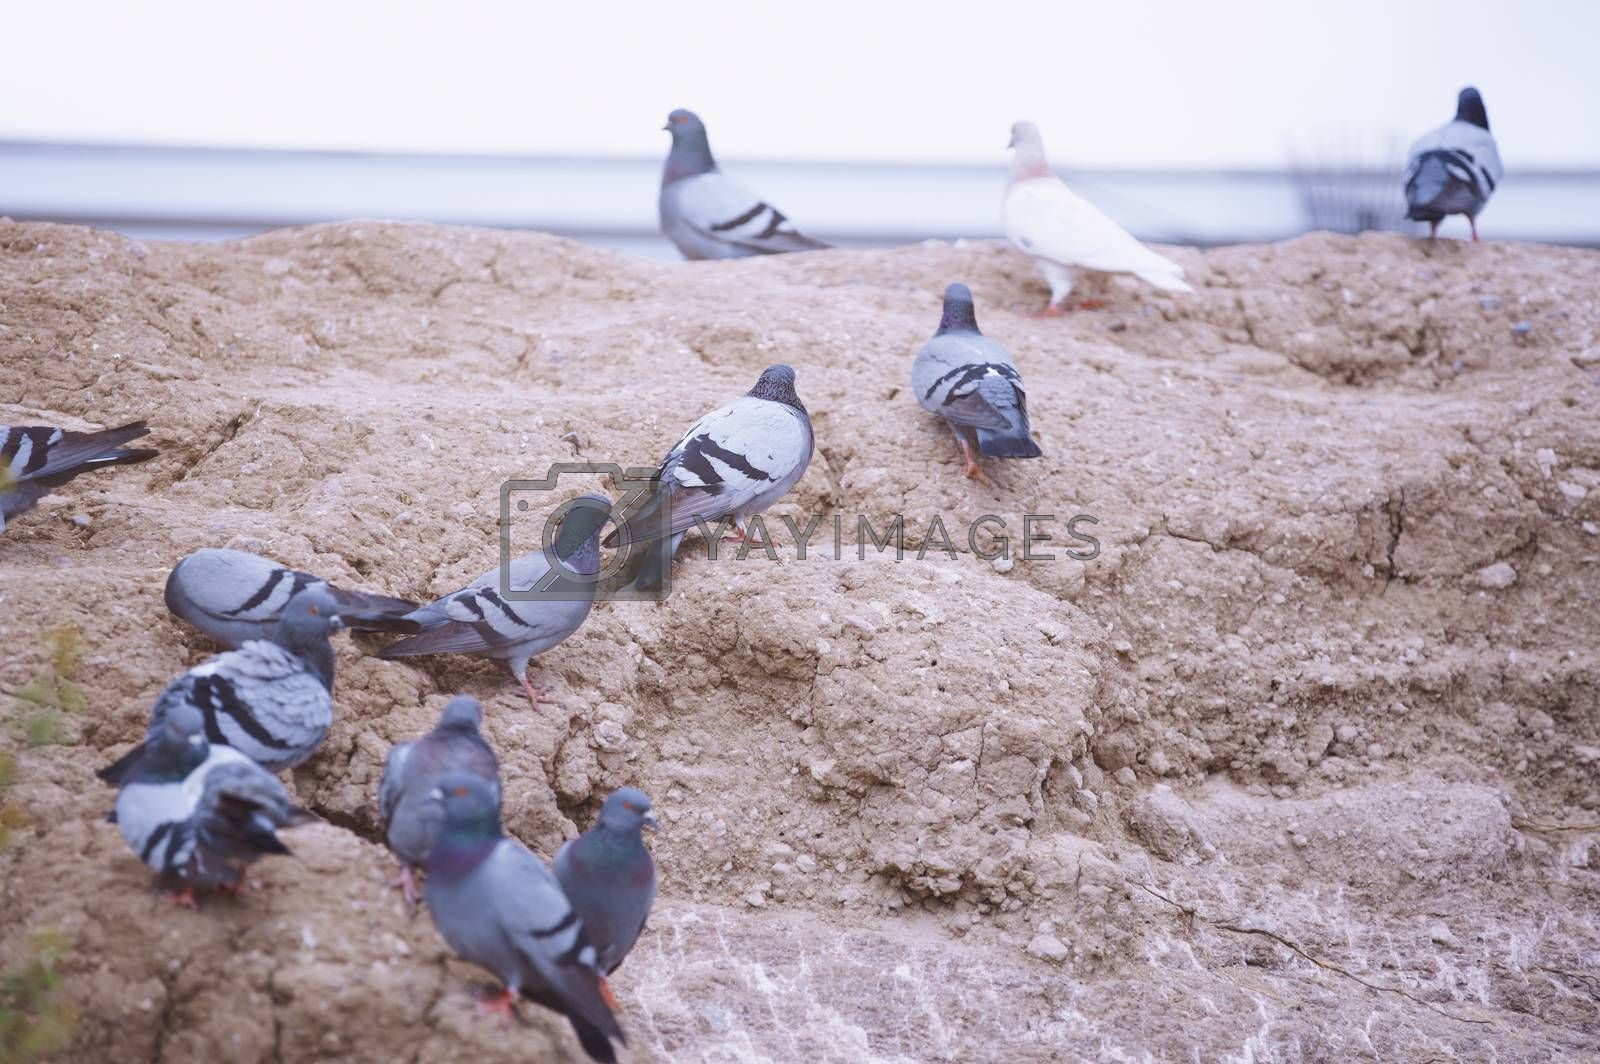 Flock of pigeons on the rock. Close-up horizontal view